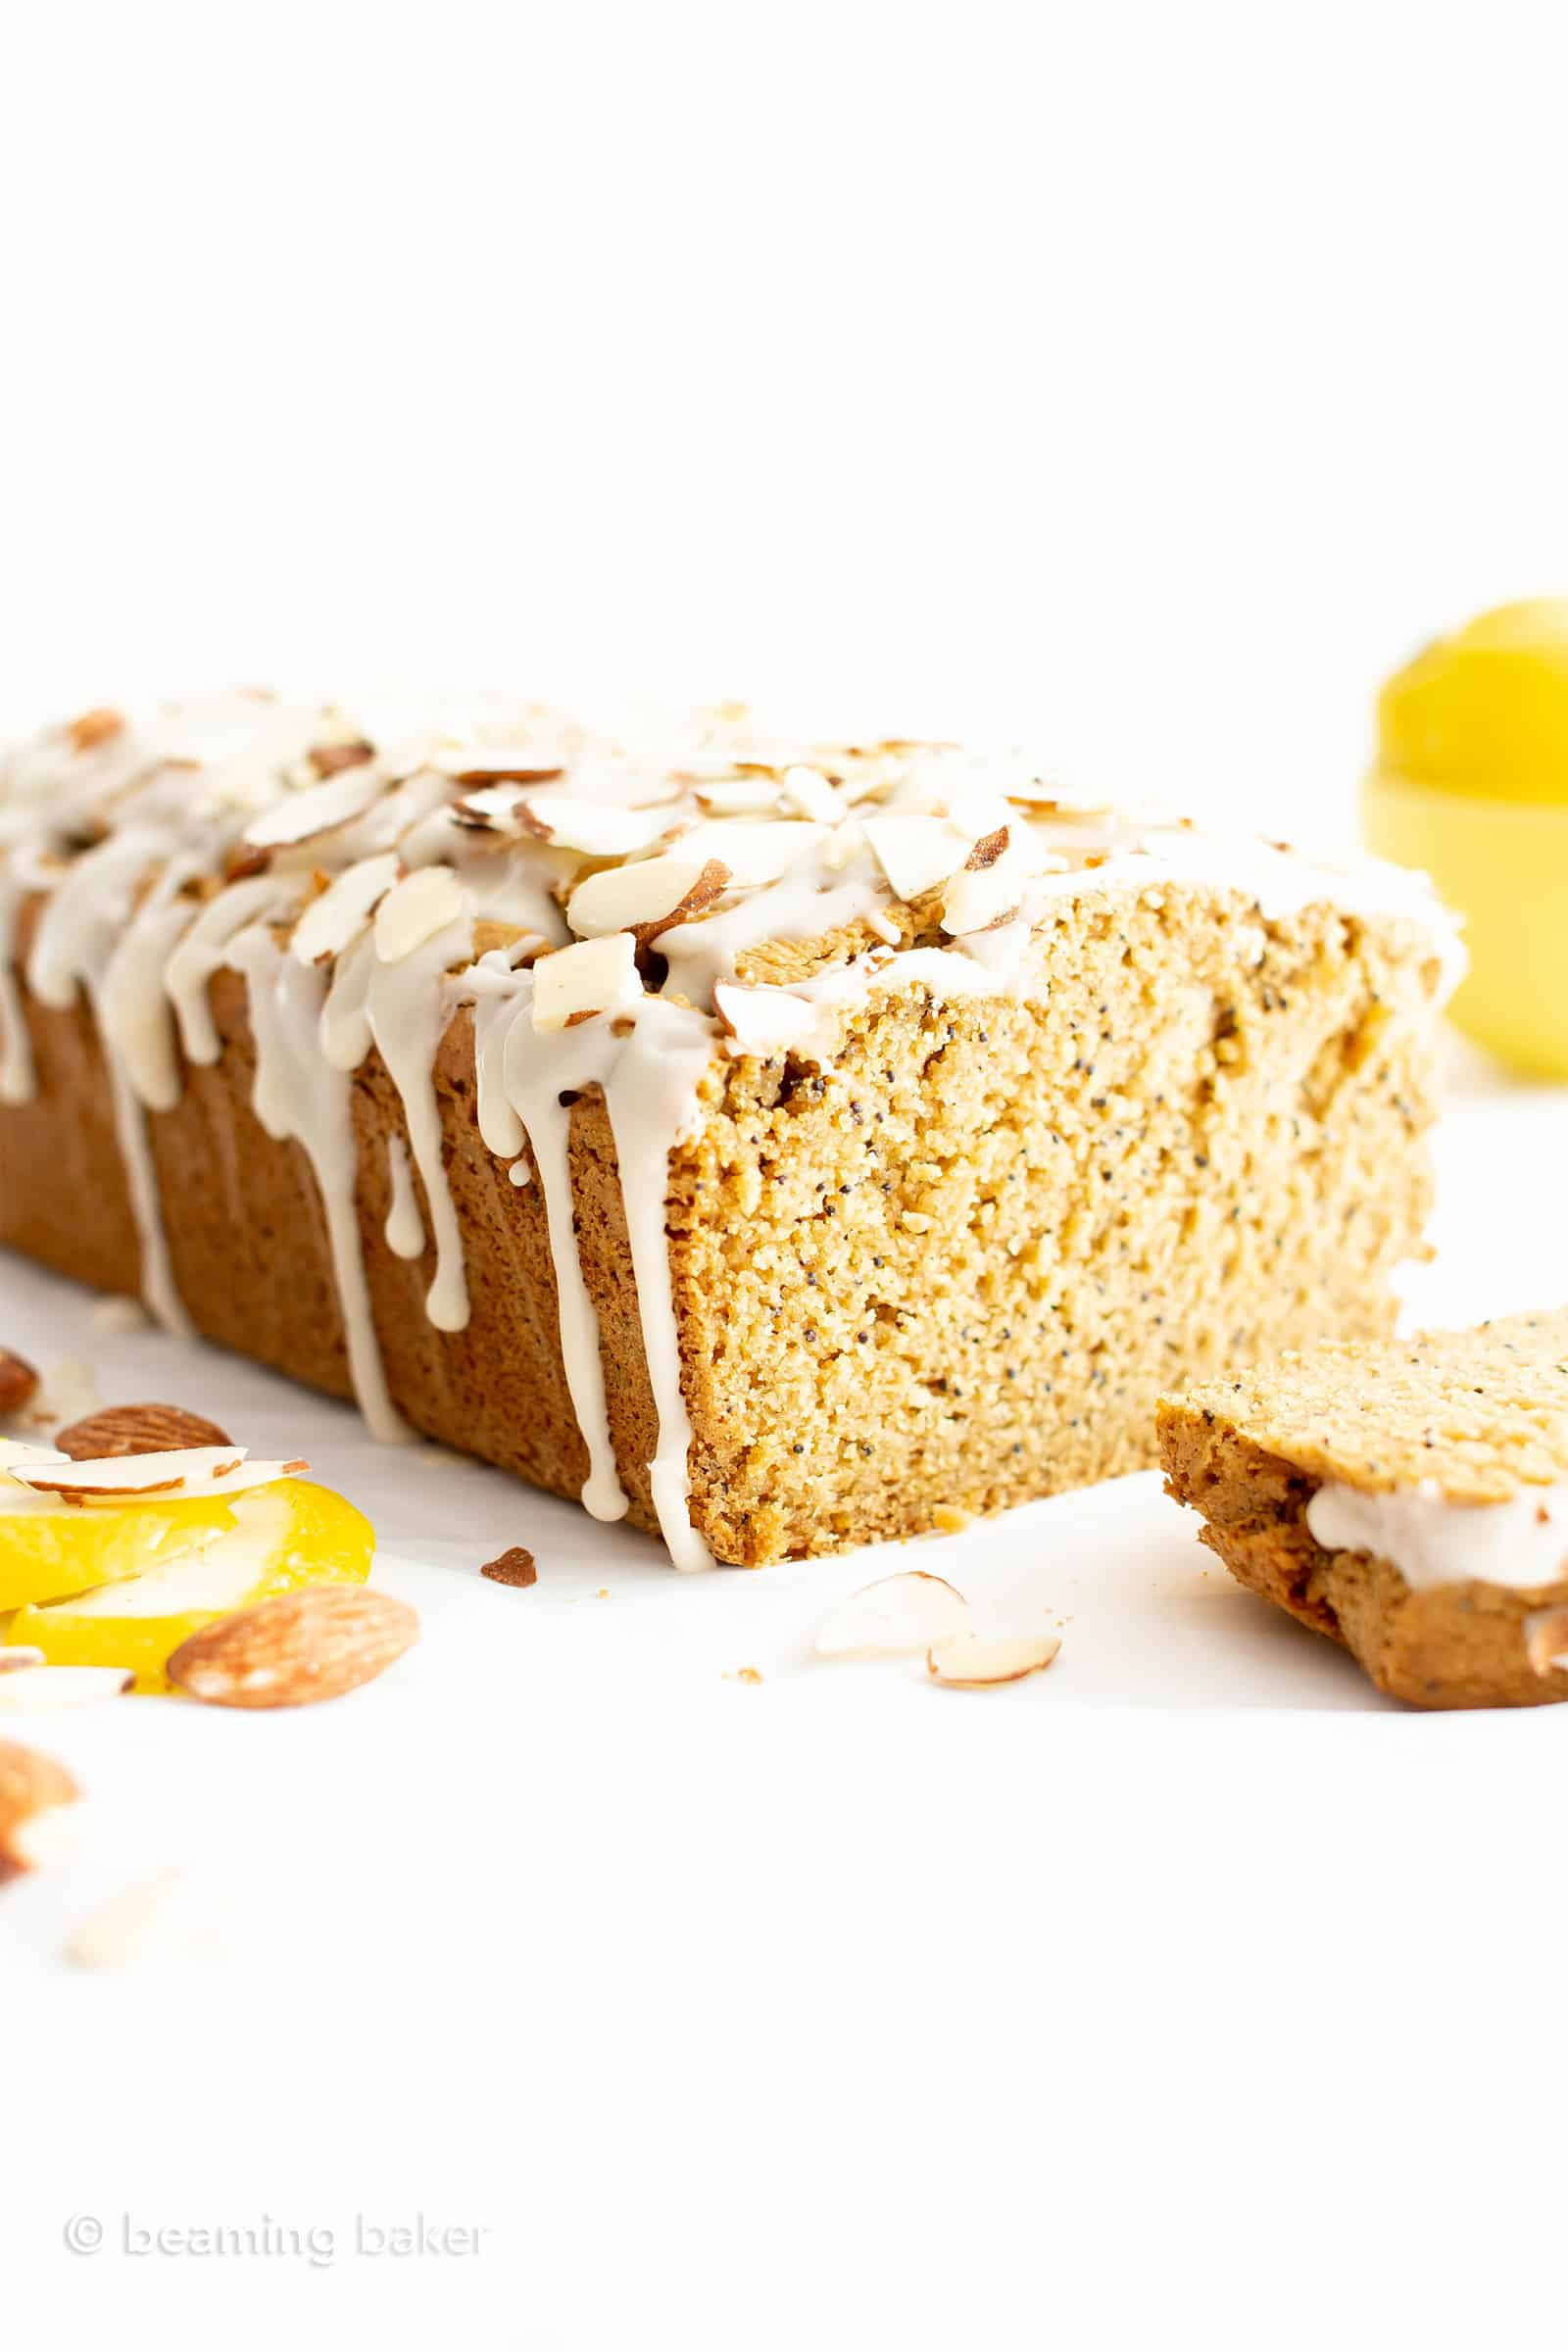 Easy Vegan Lemon Almond Poppy Seed Bread Recipe (Gluten-Free